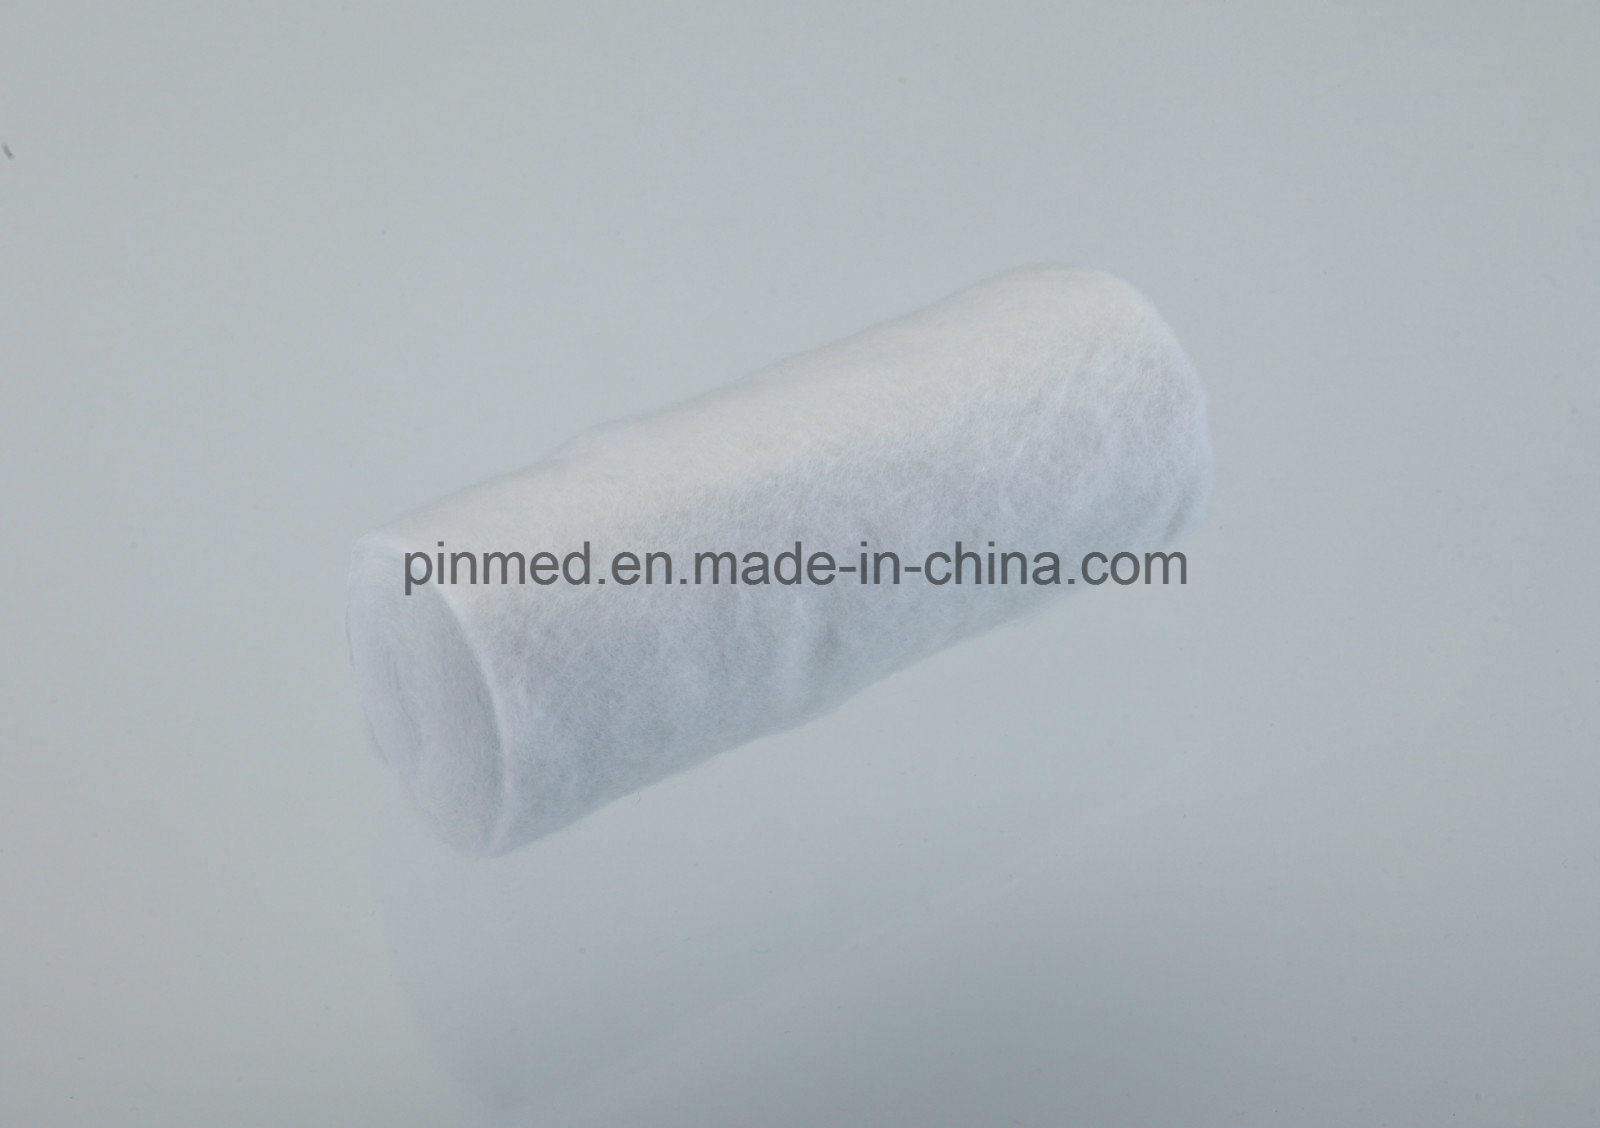 Disposable Orthopedic Wool Padding, Cotton or Synthetic Fiber